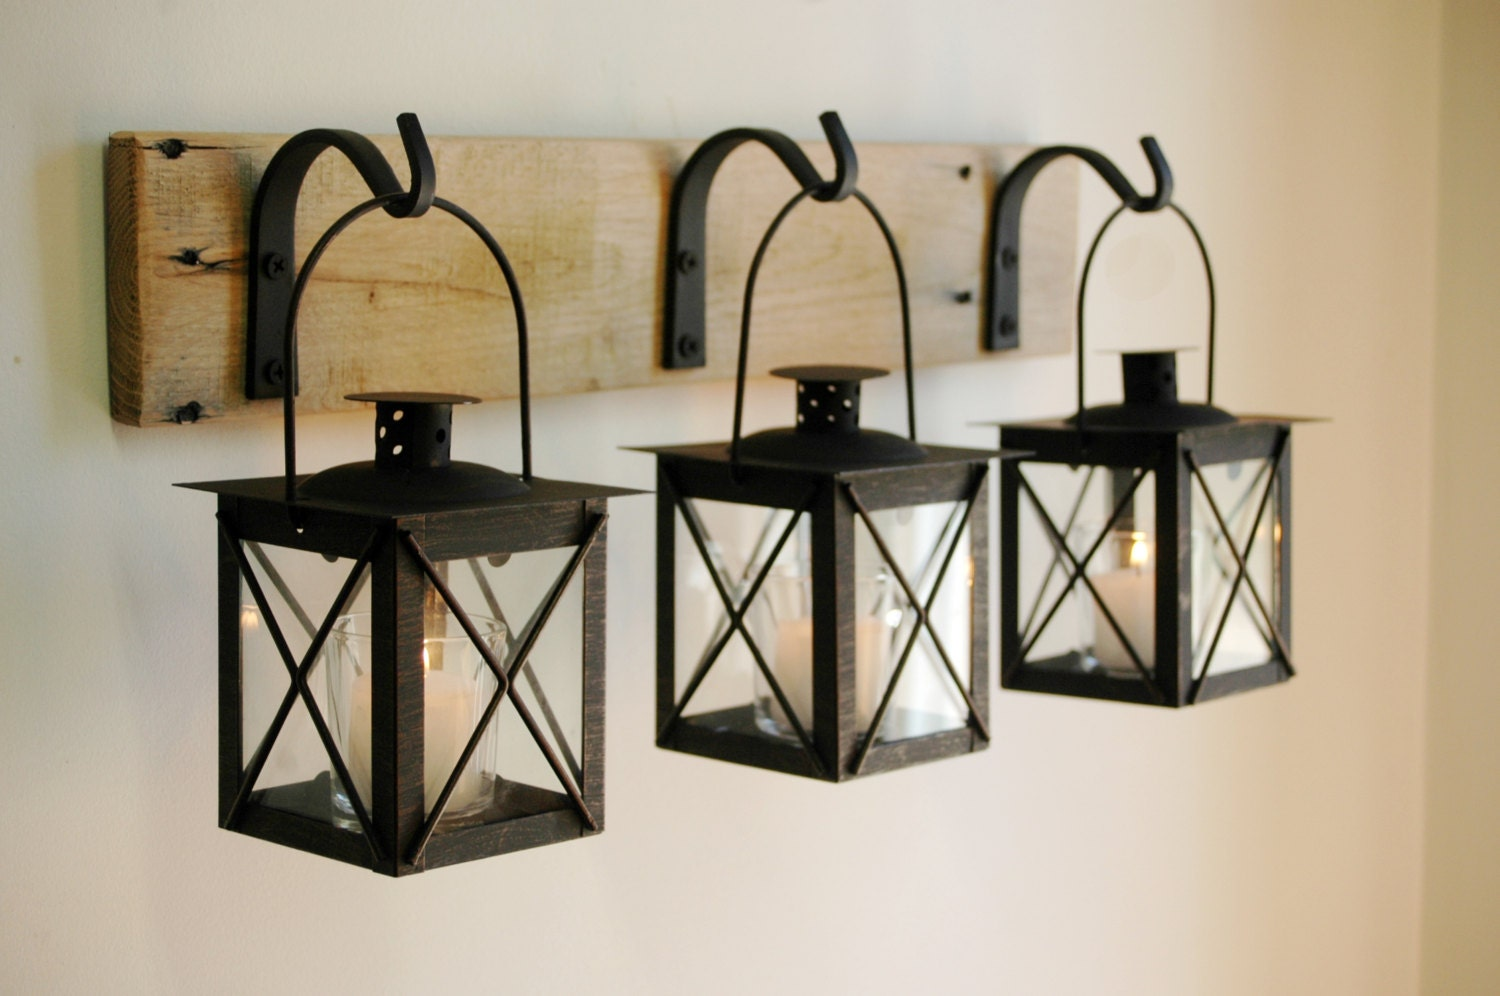 Black lantern trio wall decor home decor rustic decor Cool wall signs